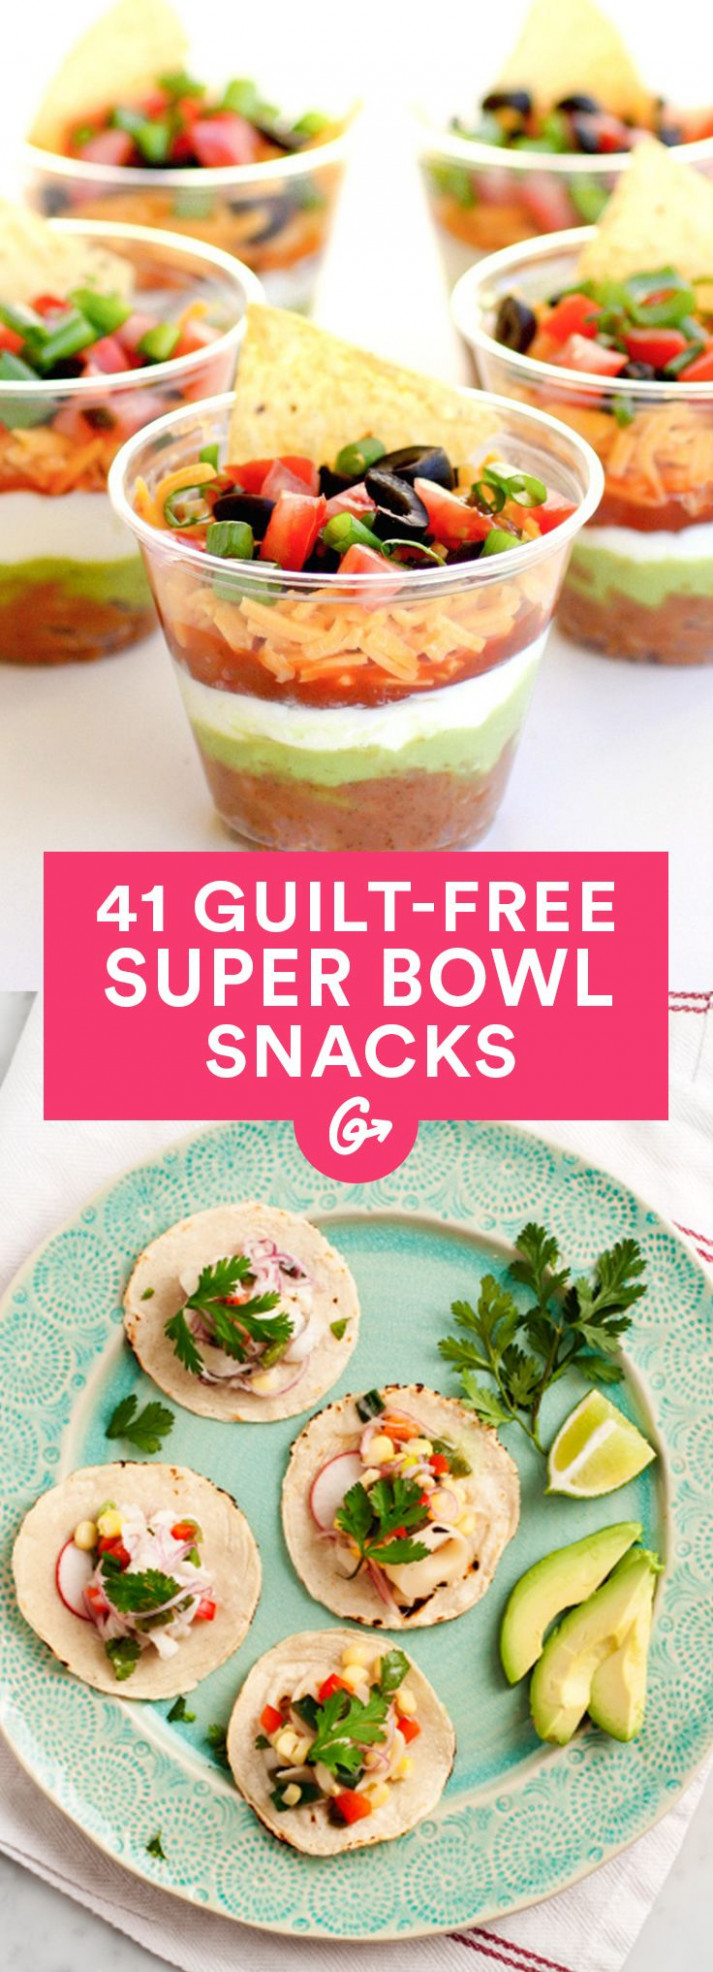 41 Guilt-Free Super Bowl Snacks | Super bowl, Health and Bowls - recipes of healthy snacks